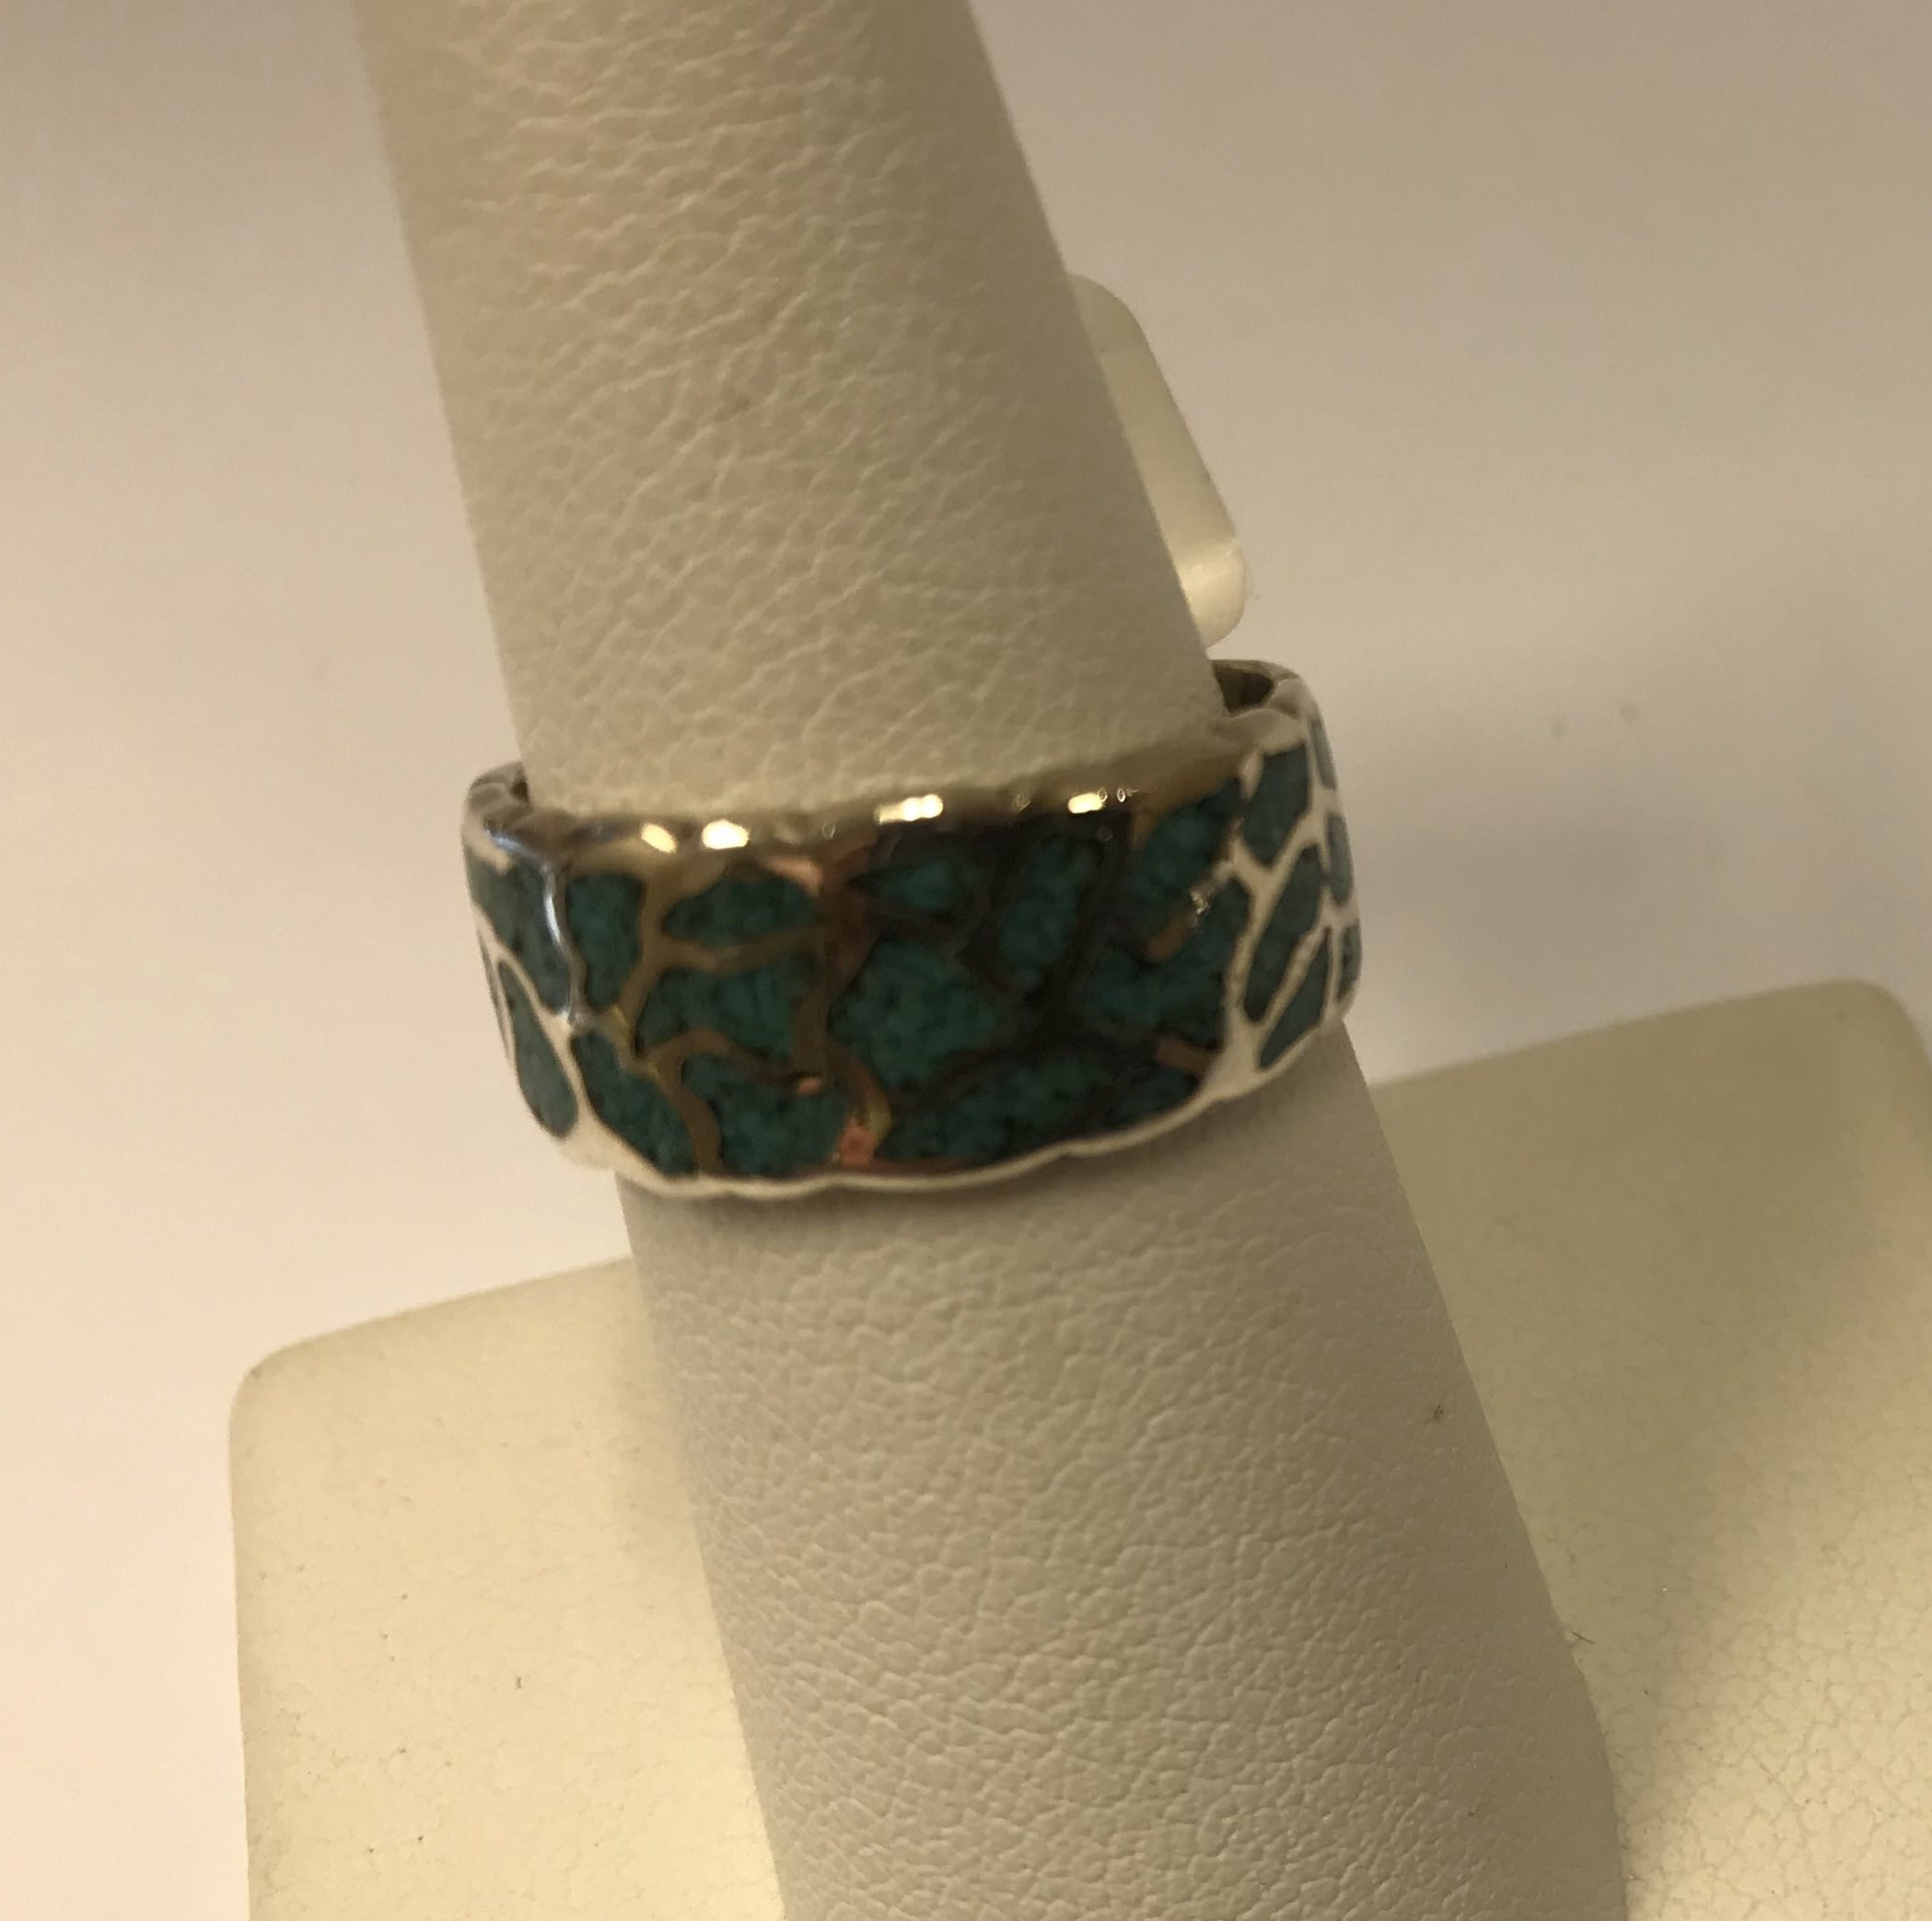 VINTAGE ZUNI OR NAVAJO STERLING SILVER CRUSHED TURQUOISE INLAY RING BAND SIZE 7